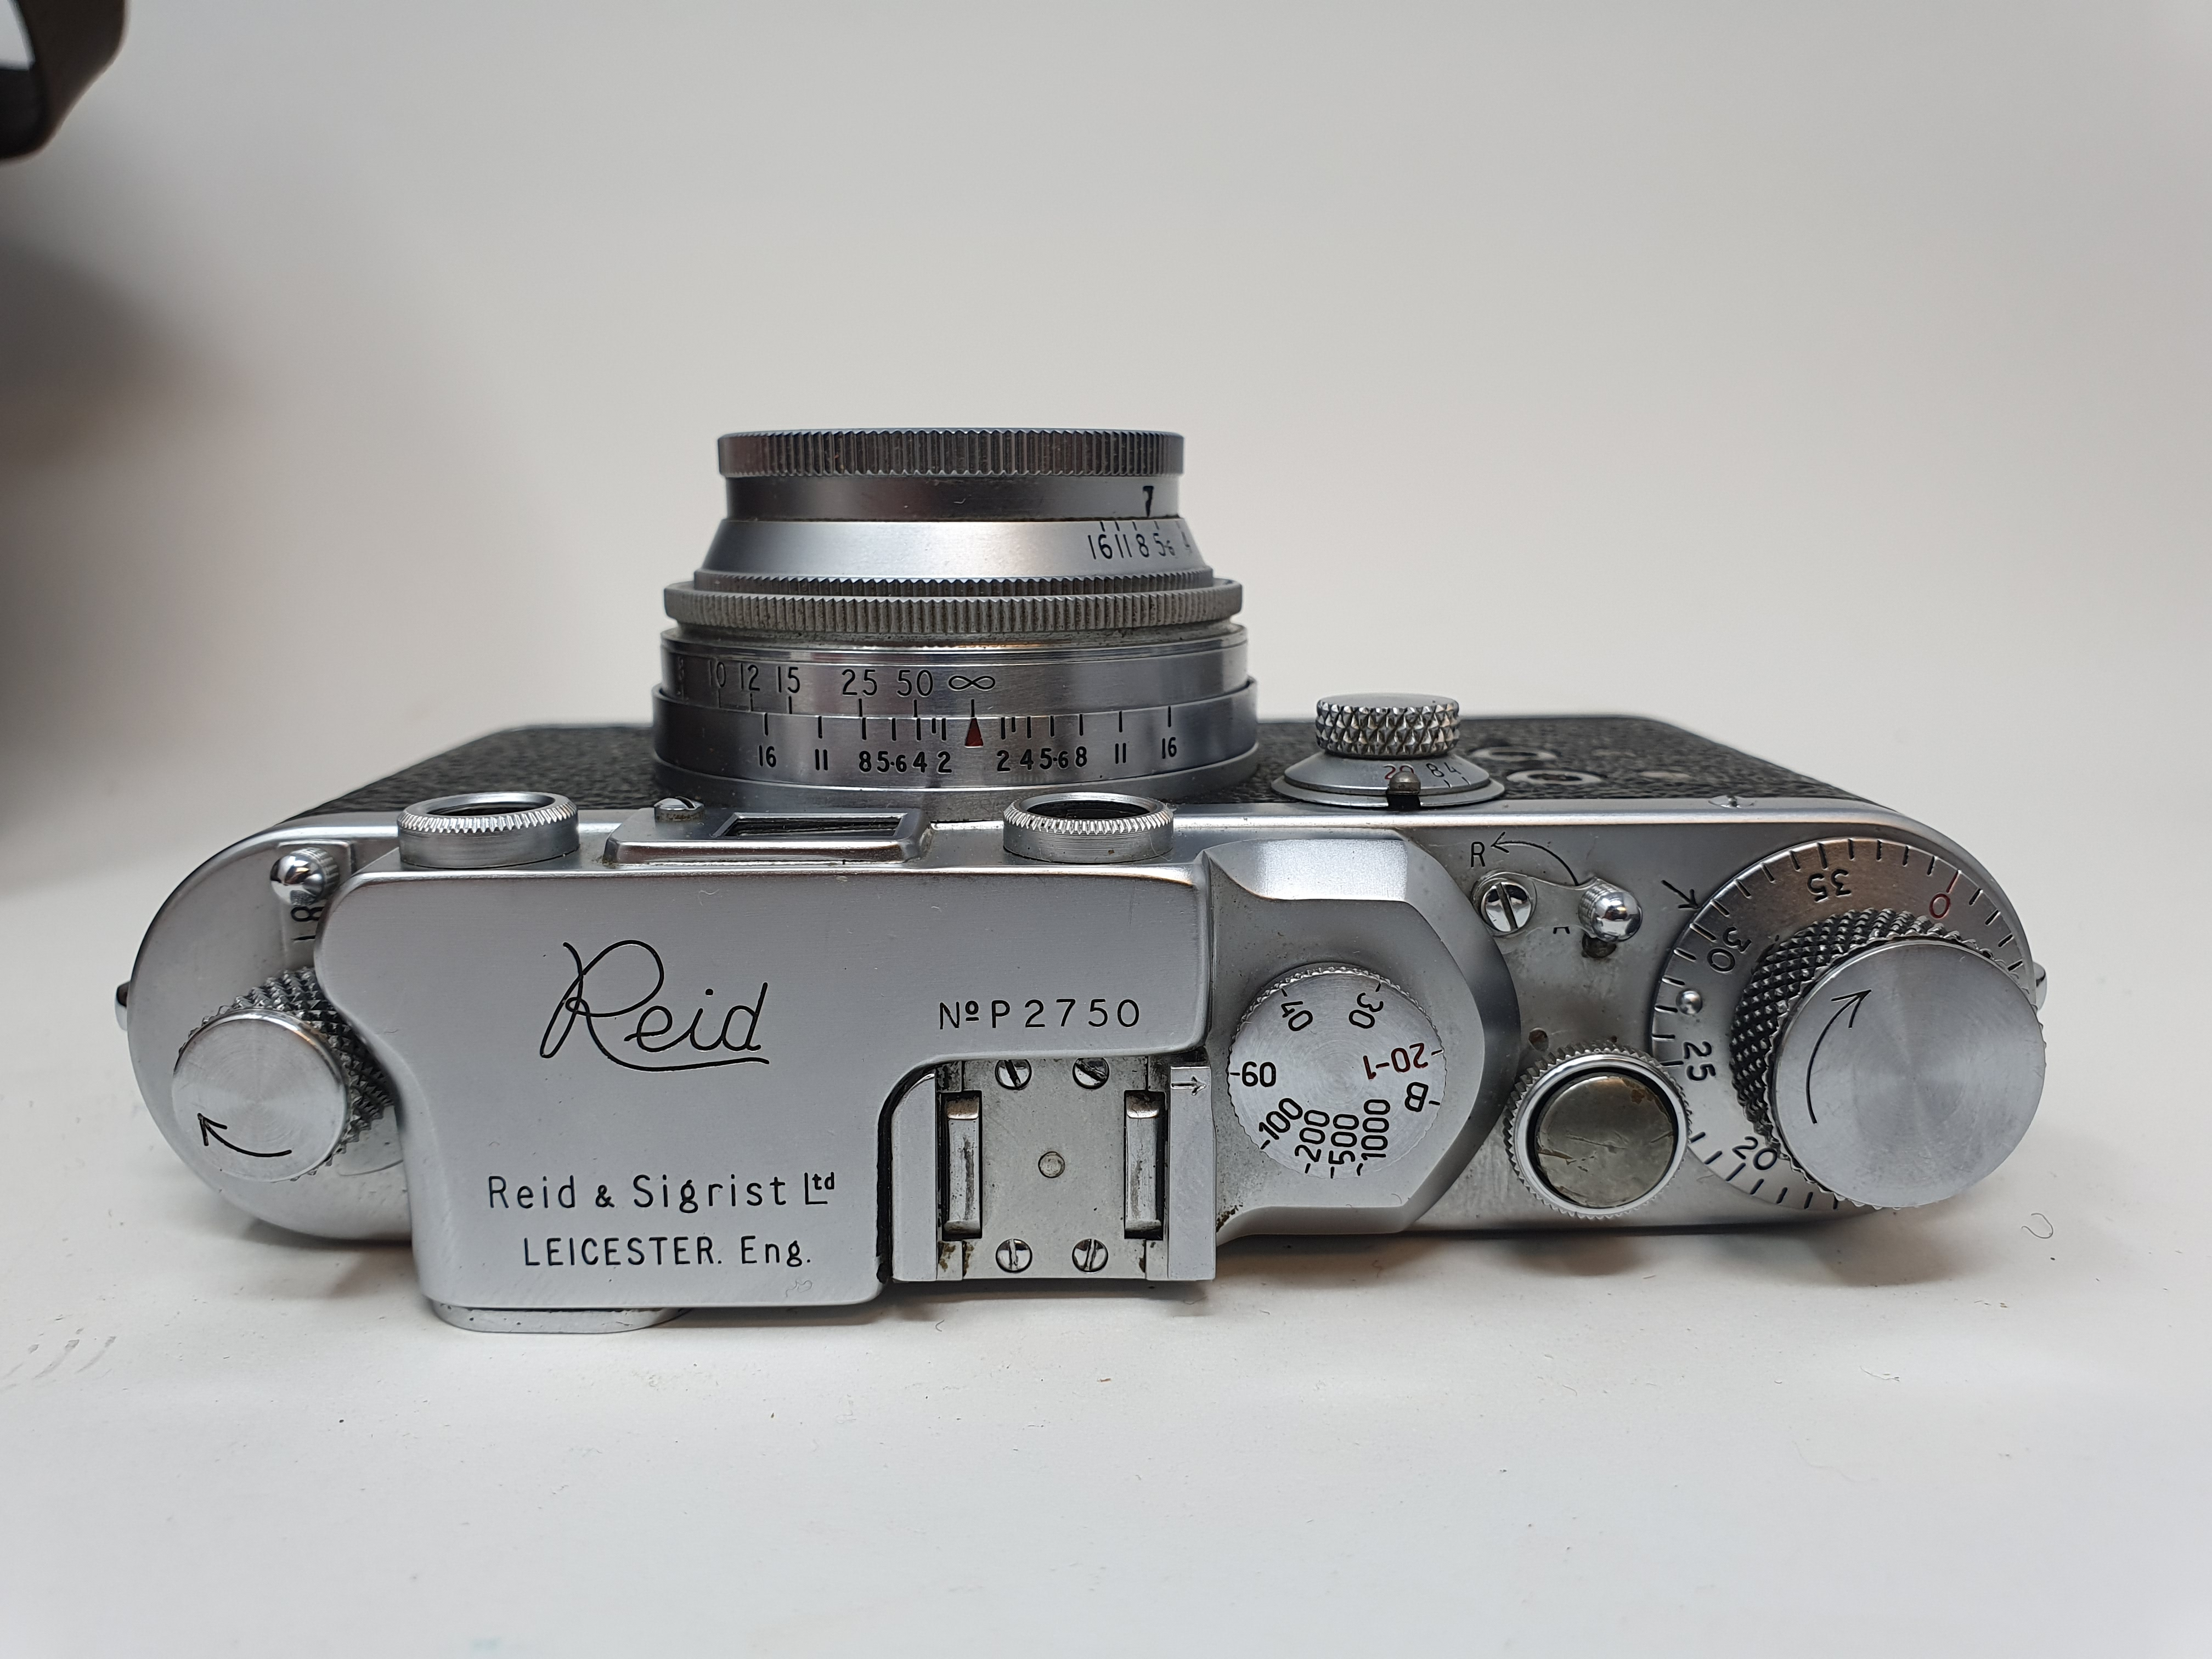 A Reid & Sigrist ltd camera, serial number P2750, with leather outer case, lens, and accessories - Image 3 of 7